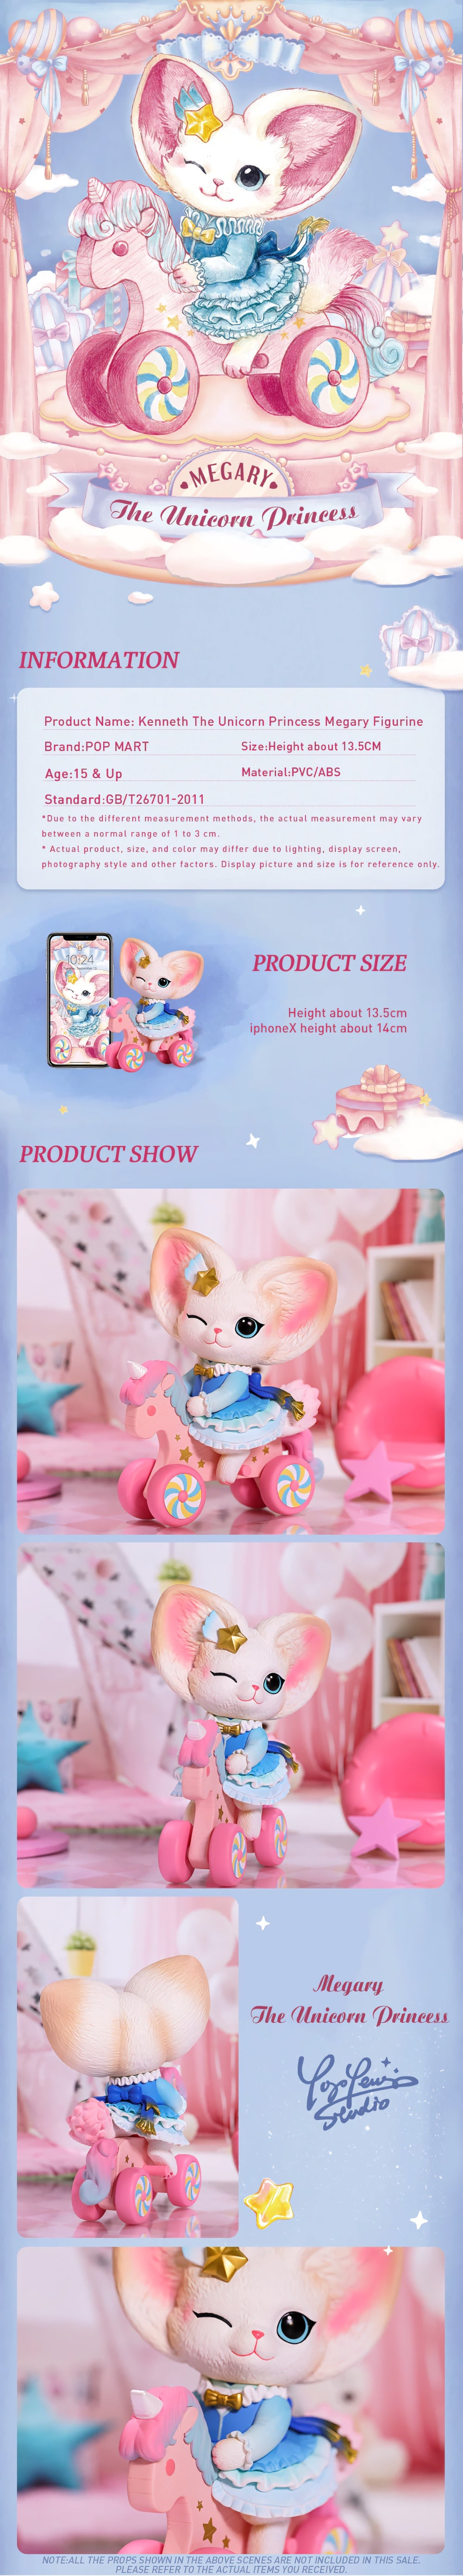 Material: PVC/ABS  Size: Height about 13.5cm  Age: 15&up